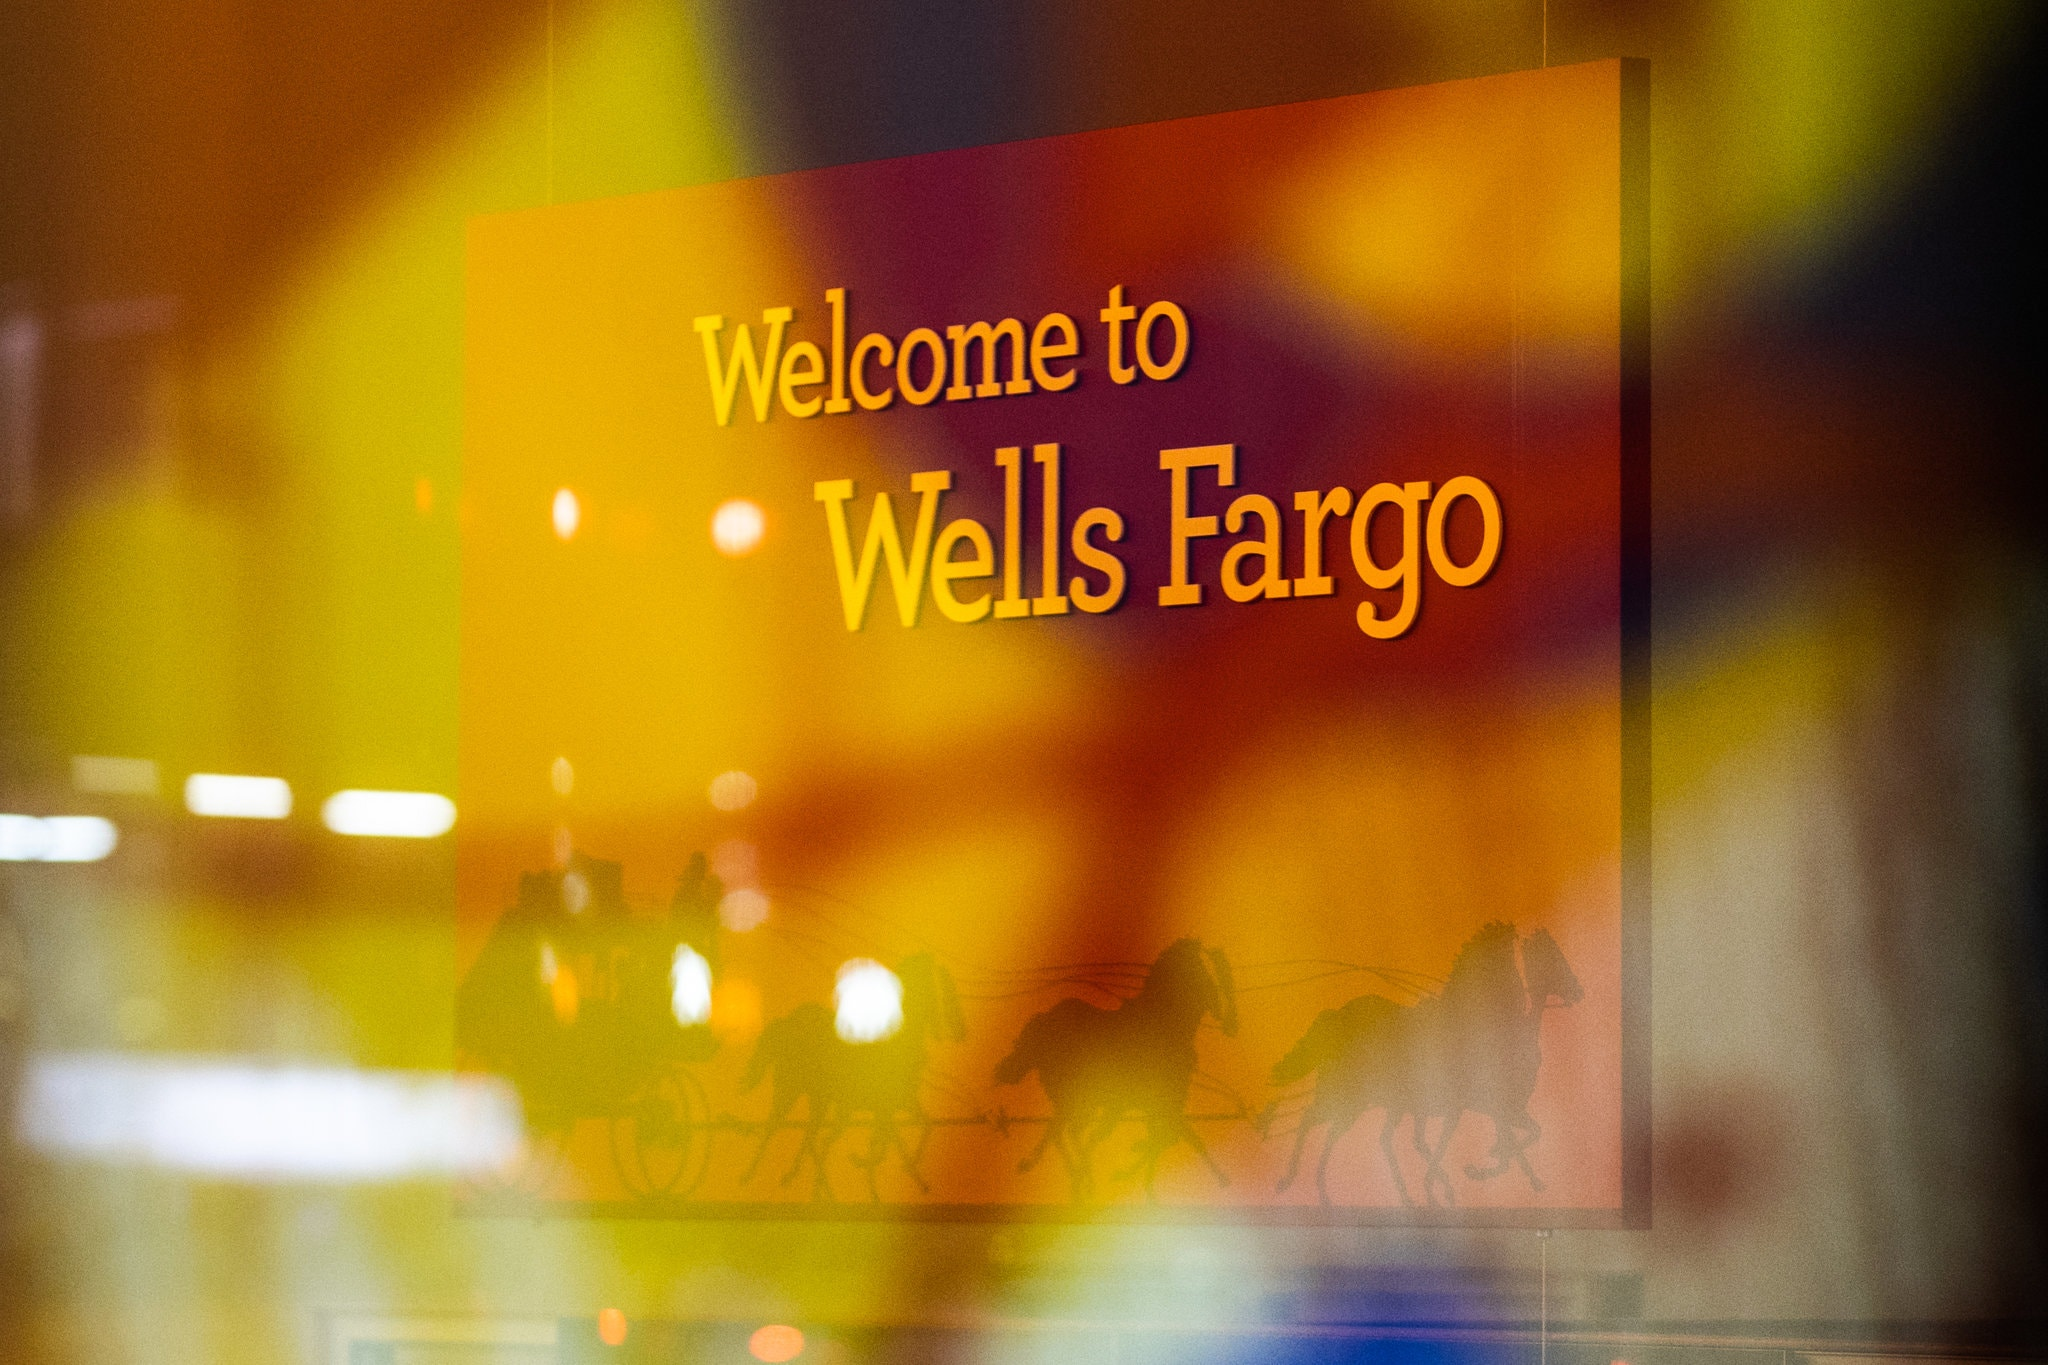 The Price of Wells Fargo's Fake Account Scandal Grows by $3 Billion